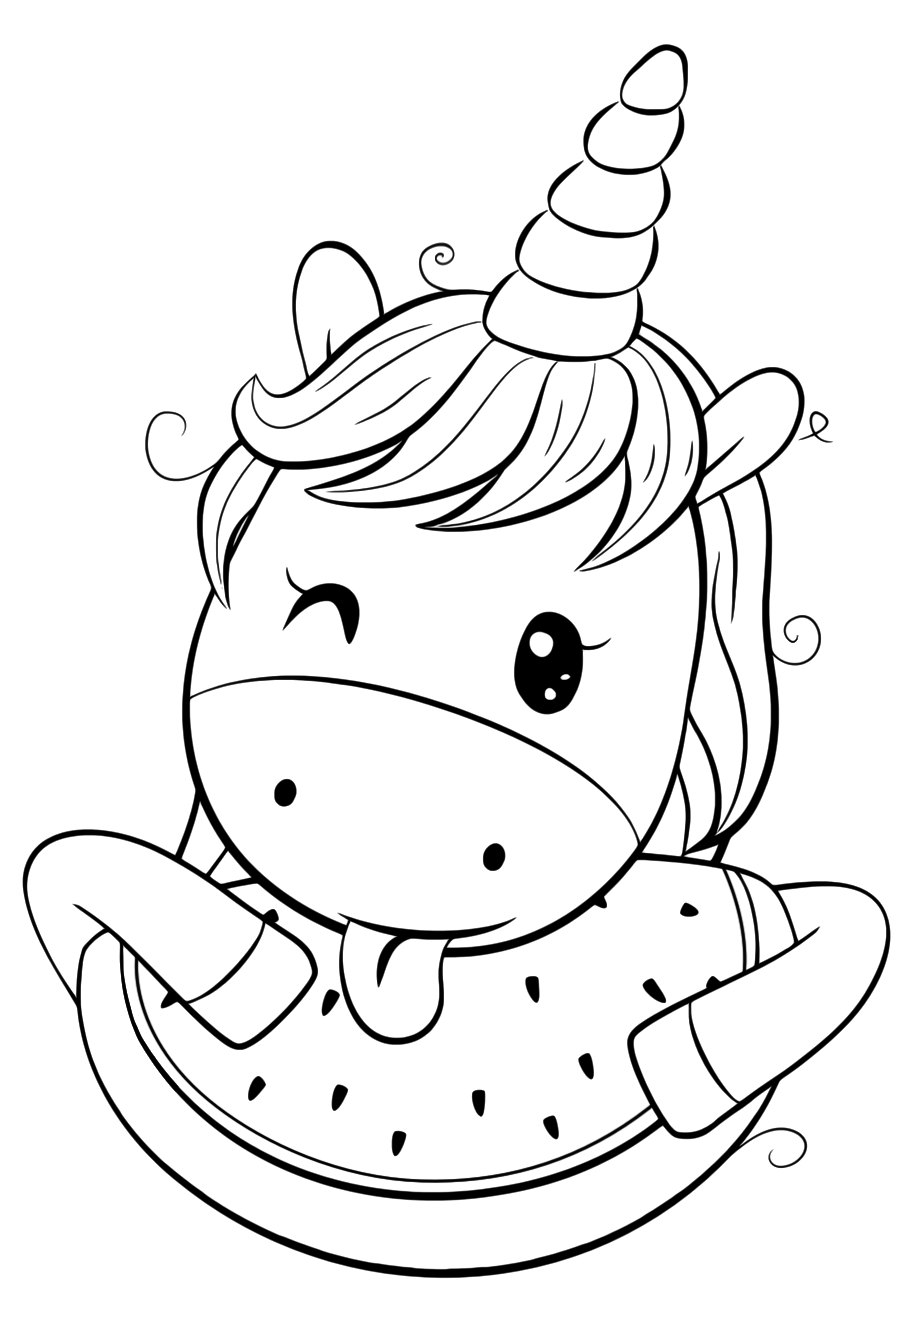 unicorn pictures for coloring unicorn coloring pages to download and print for free coloring unicorn for pictures